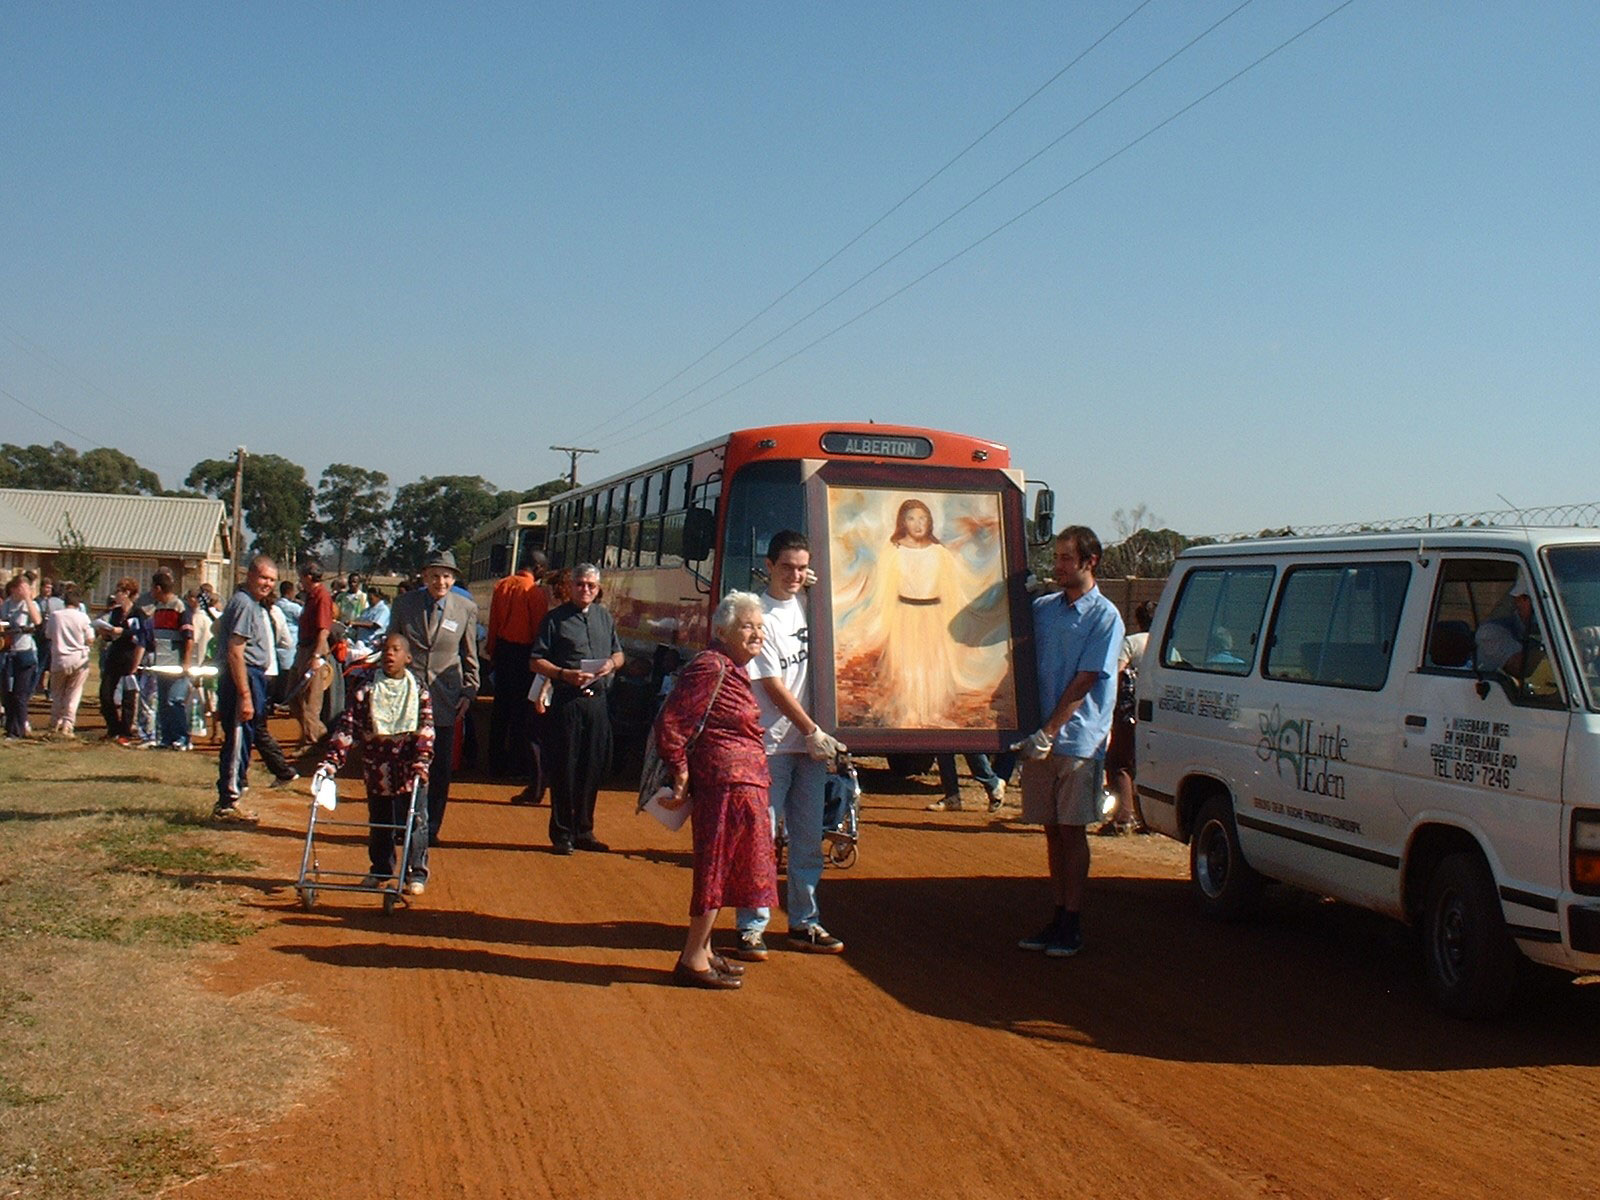 First-pilgrimage-from-LITTLE-EDEN-Edenvale-to-Elvira-Rota-Village-Bapsfontein-with-Domitilla-Danny-and-parish-priest-Fr-Joseph-Leathem-OMI-in-2003